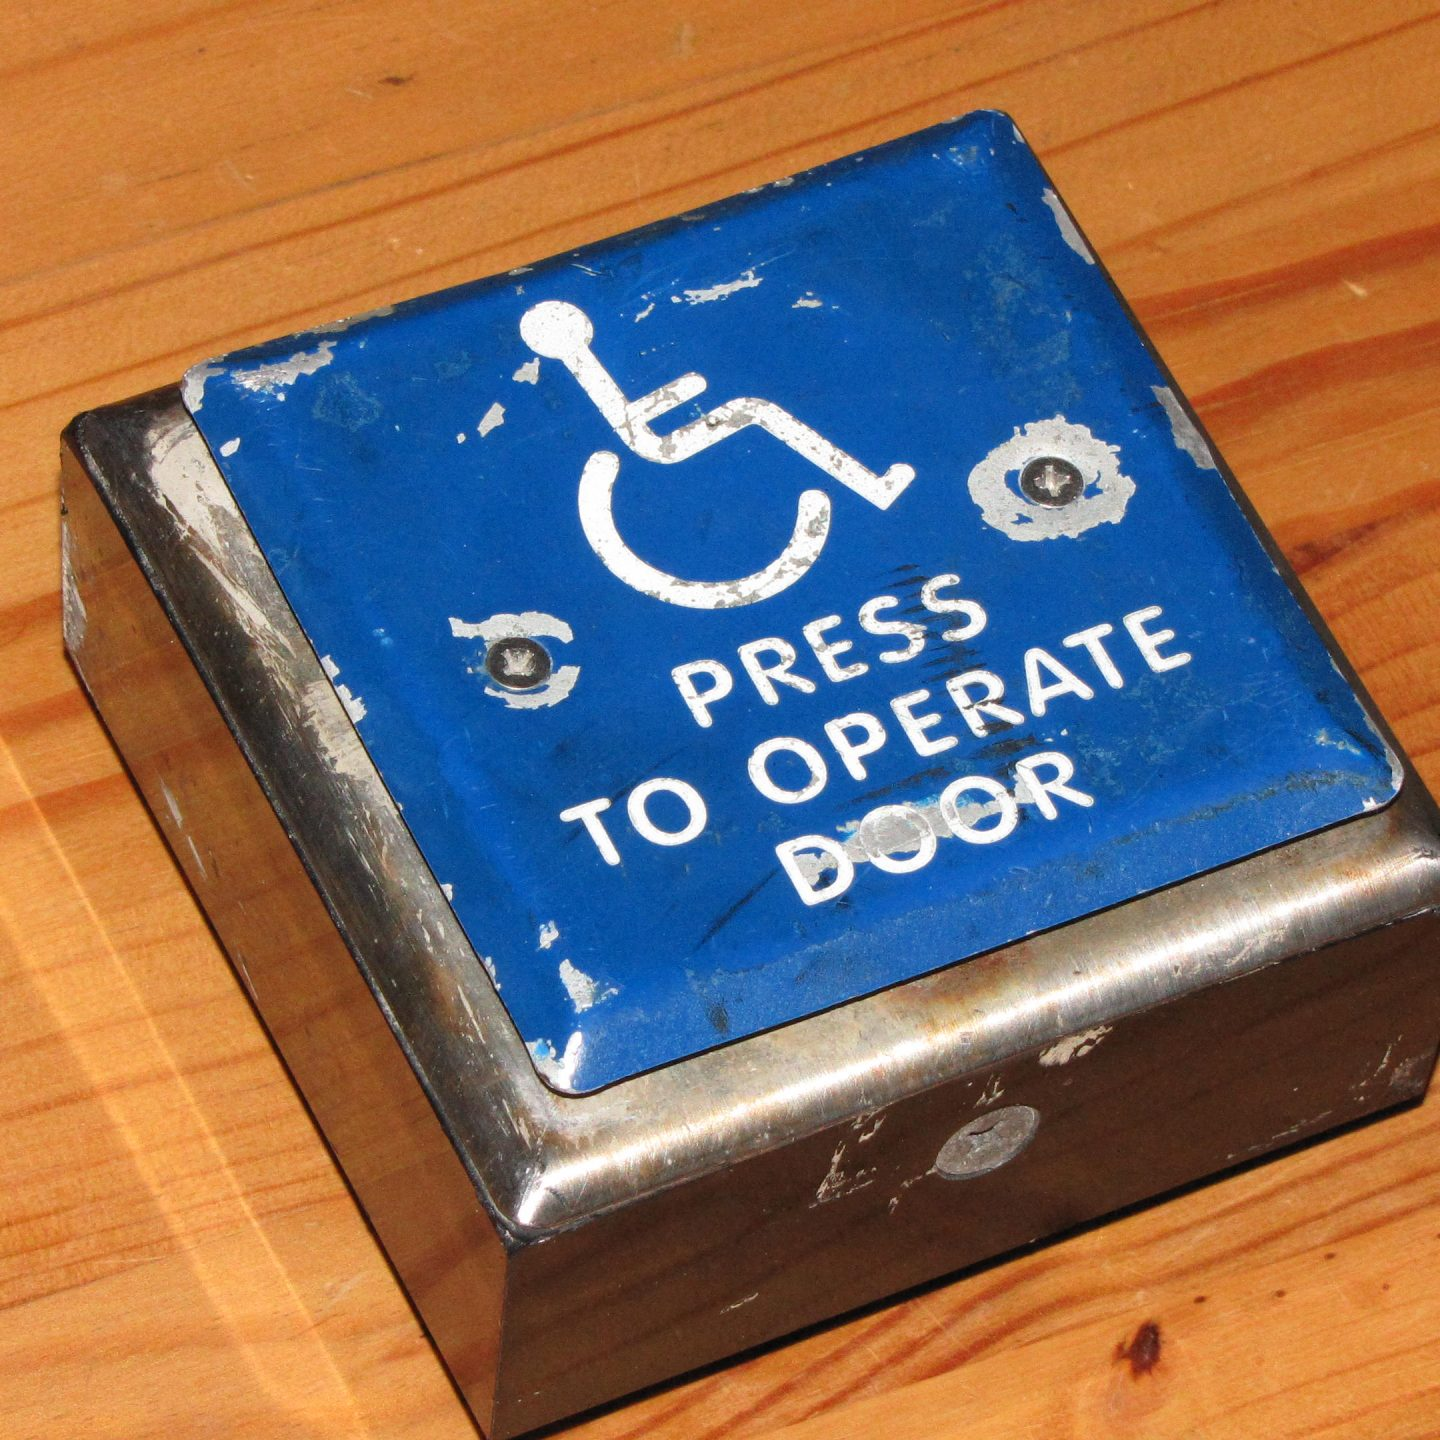 [1.14.2012]Handicap Button: Dis-assembly of a used Wireless Handicap Button